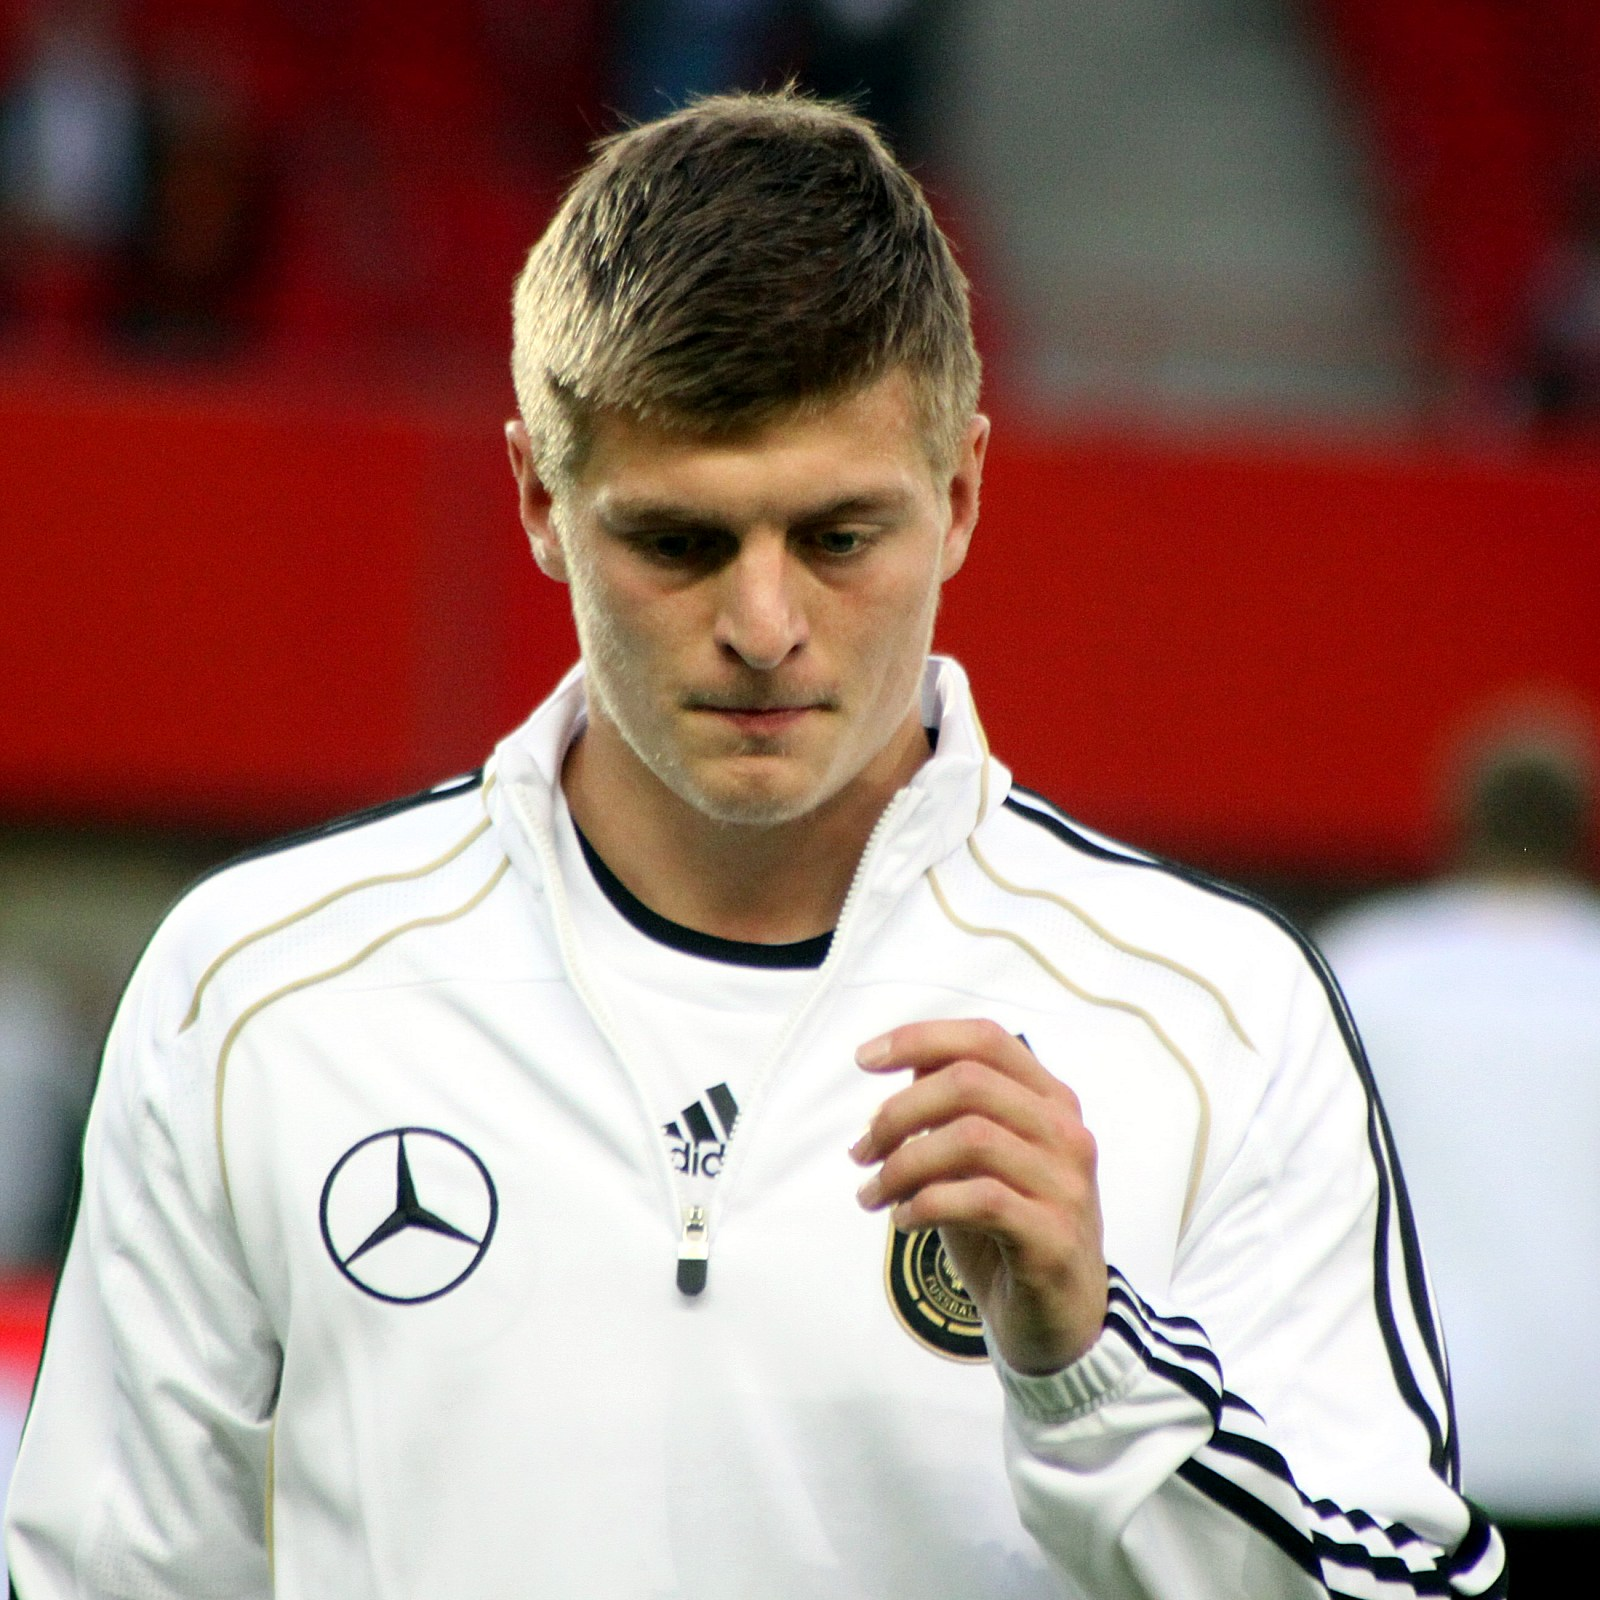 Toni Kroos  - 2019 Light blond hair & sporty hair style.